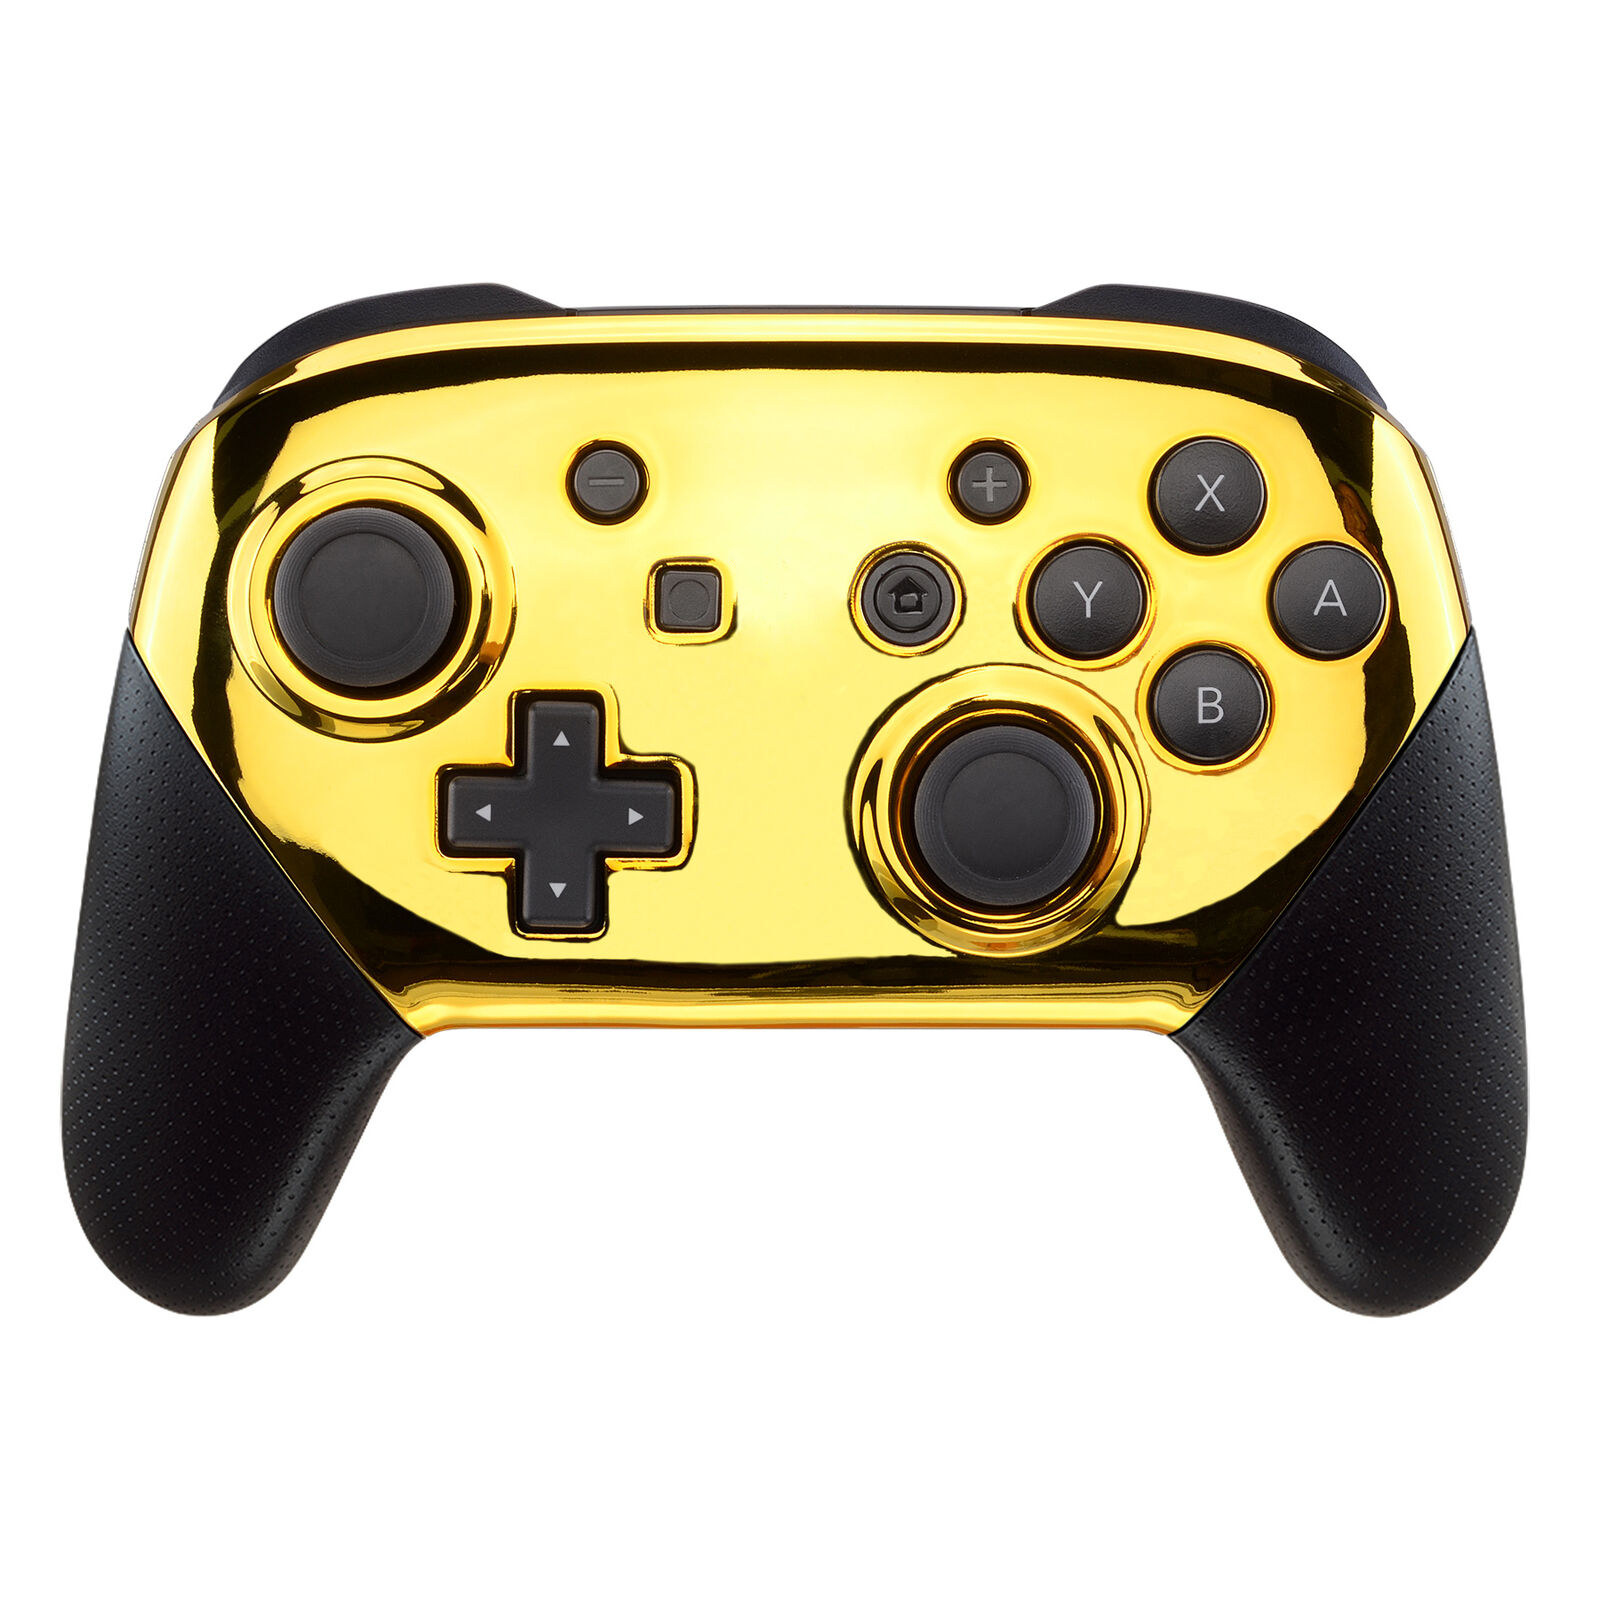 Nintendo Switch Pro Controller Black and Chrome Gold Faceplate